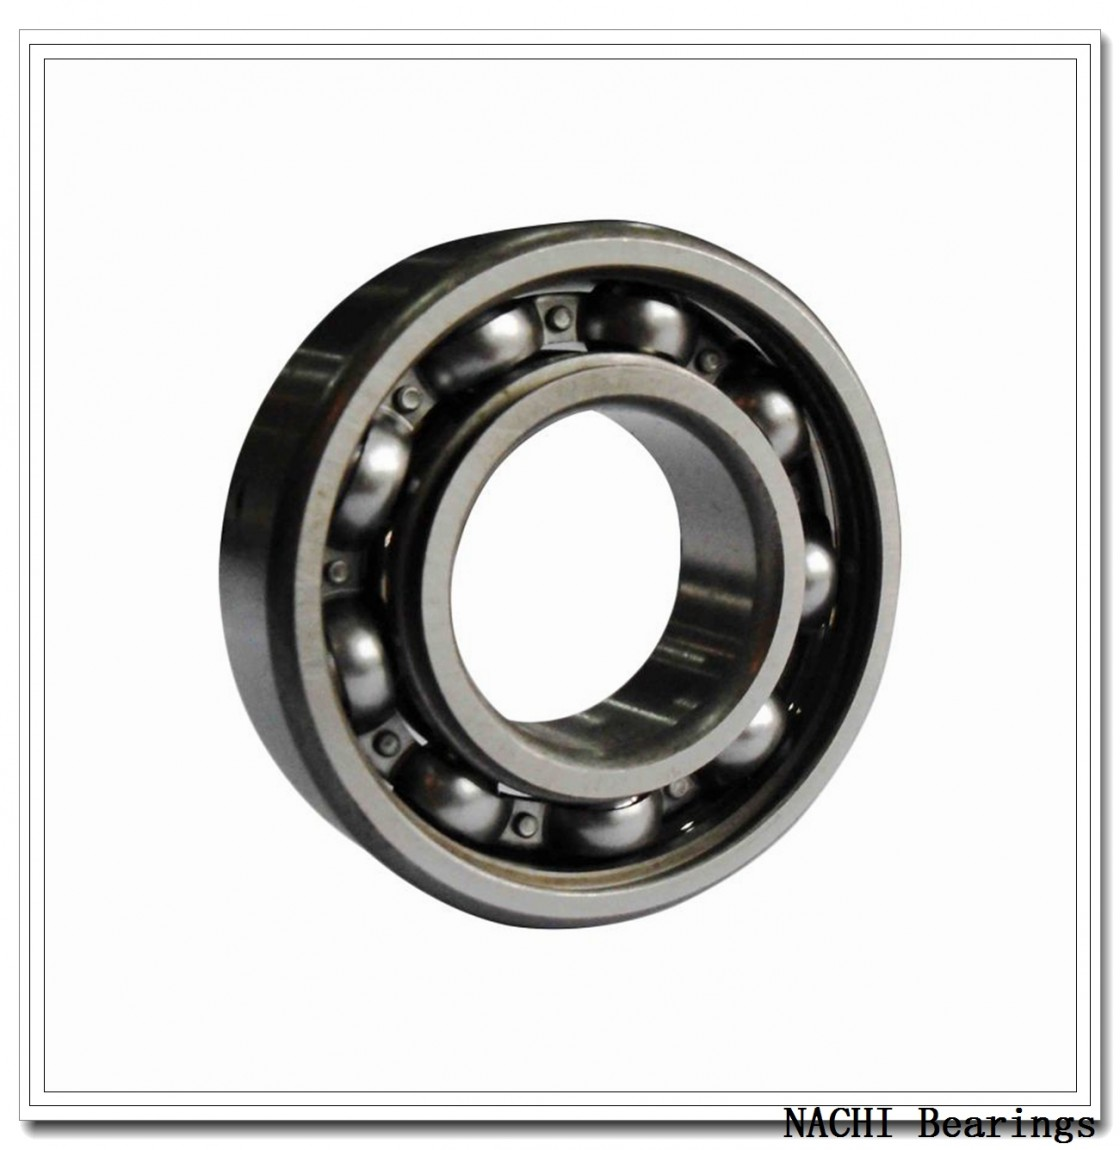 NACHI 5211 angular contact ball bearings